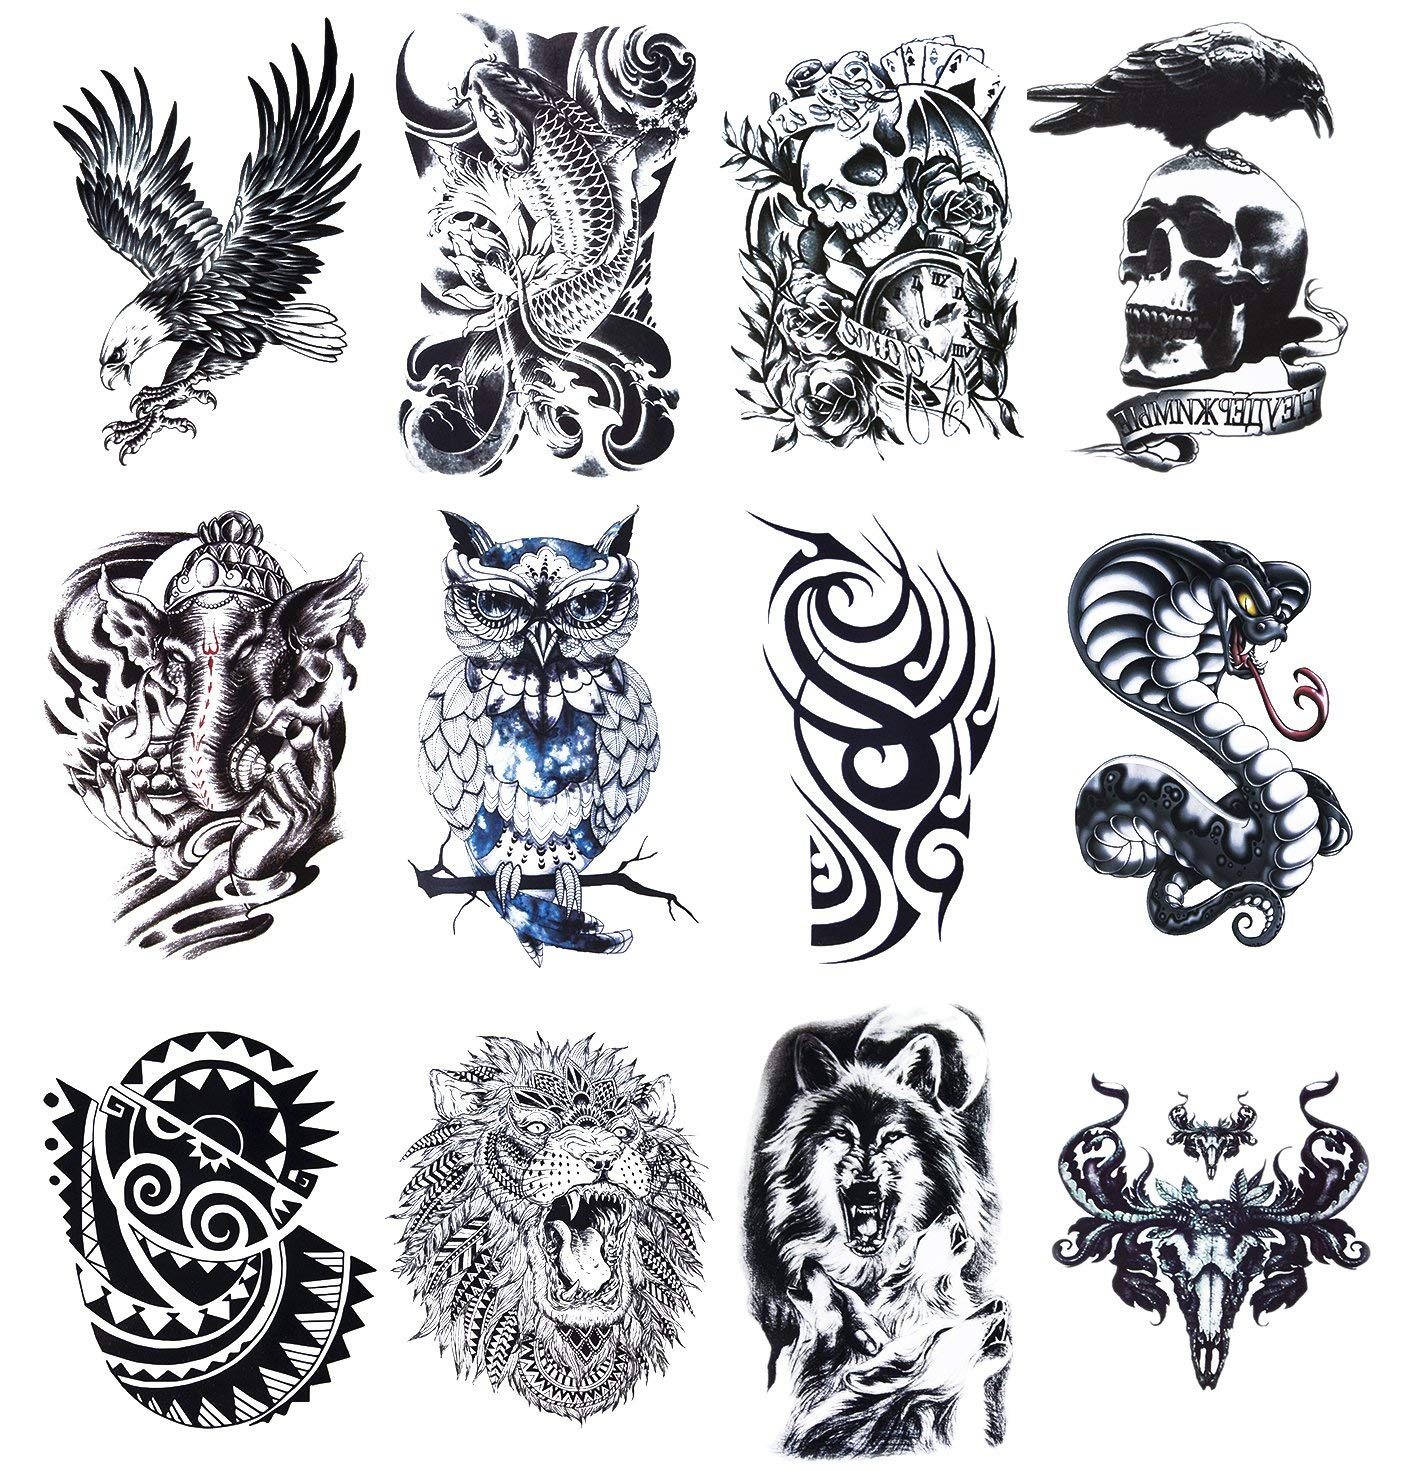 1a01f59f7 Get Quotations · 12 Sheets Temporary Tattoos Stickers, Fake Body Arm Chest Shoulder  Tattoos for Men